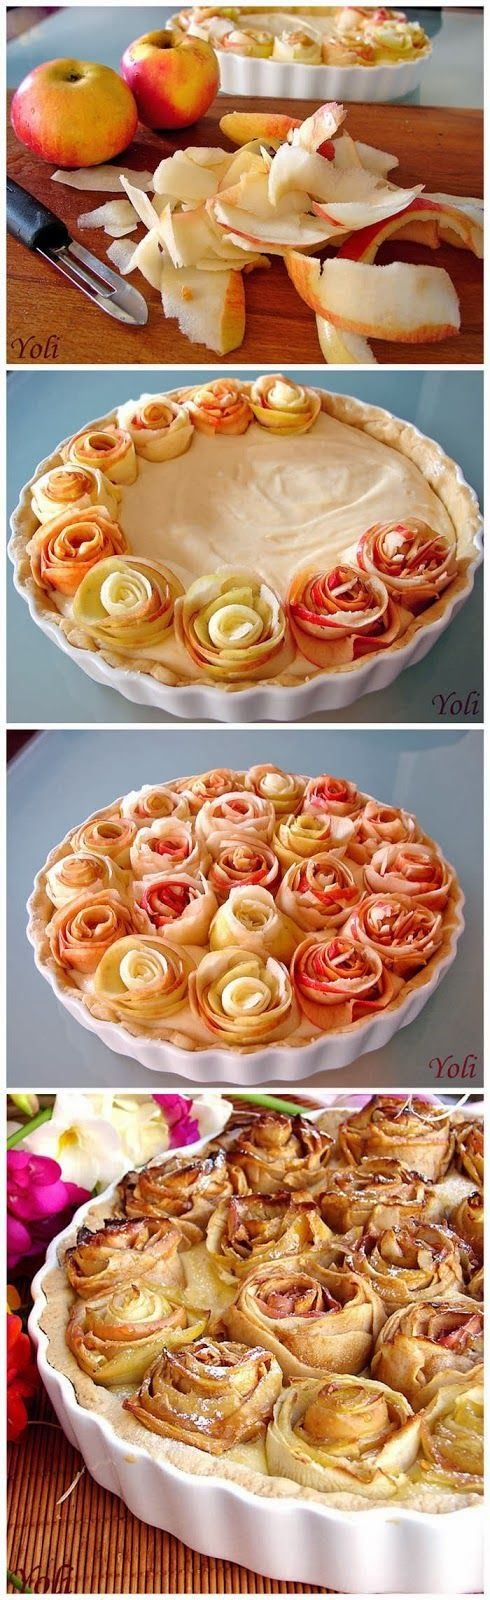 How To Apple pie with roses